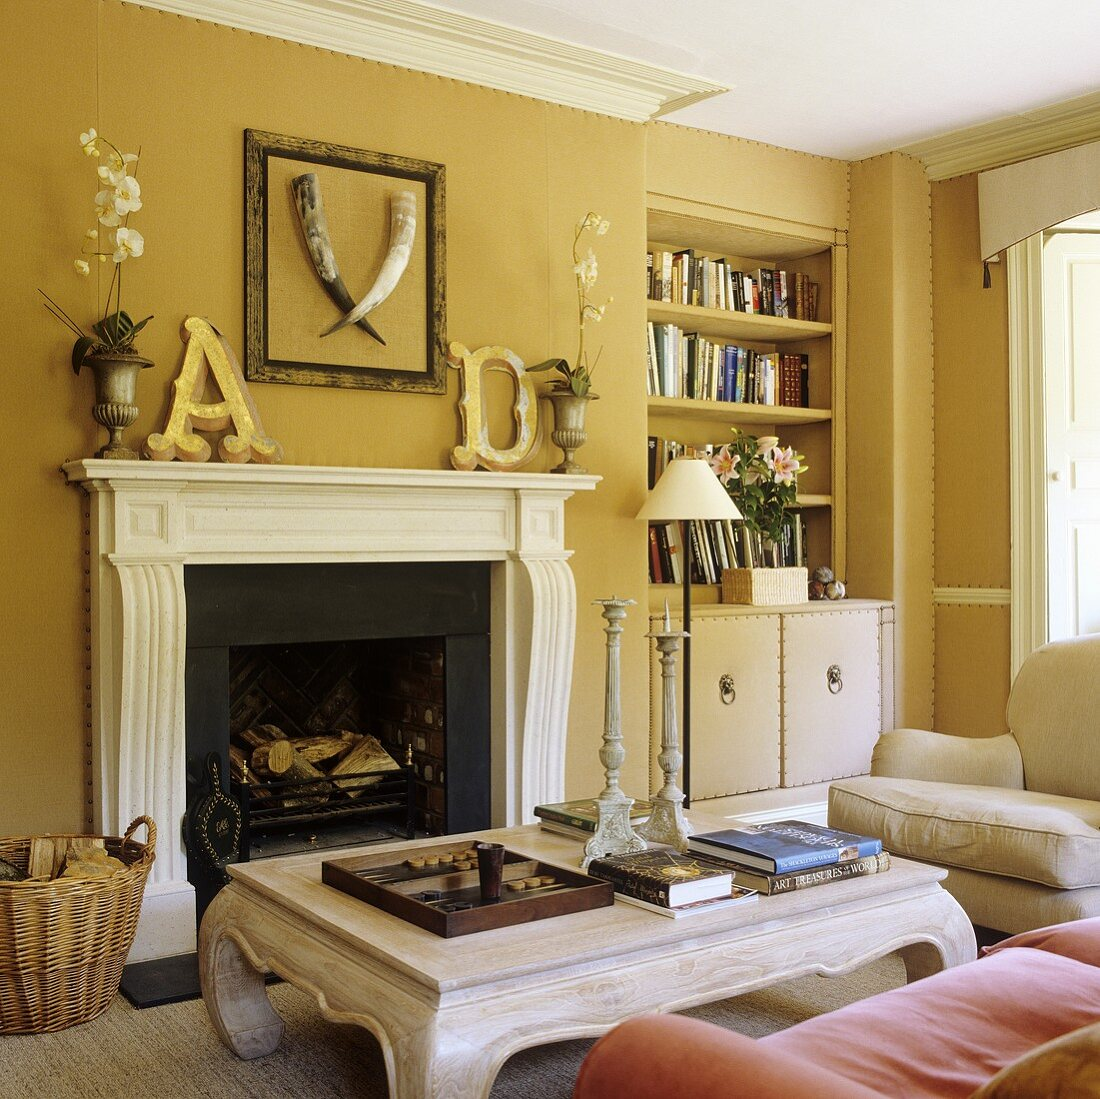 https www living4media com images 00706395 a living room with yellow walls and a coffee table in front of a fireplace and a built in shelf